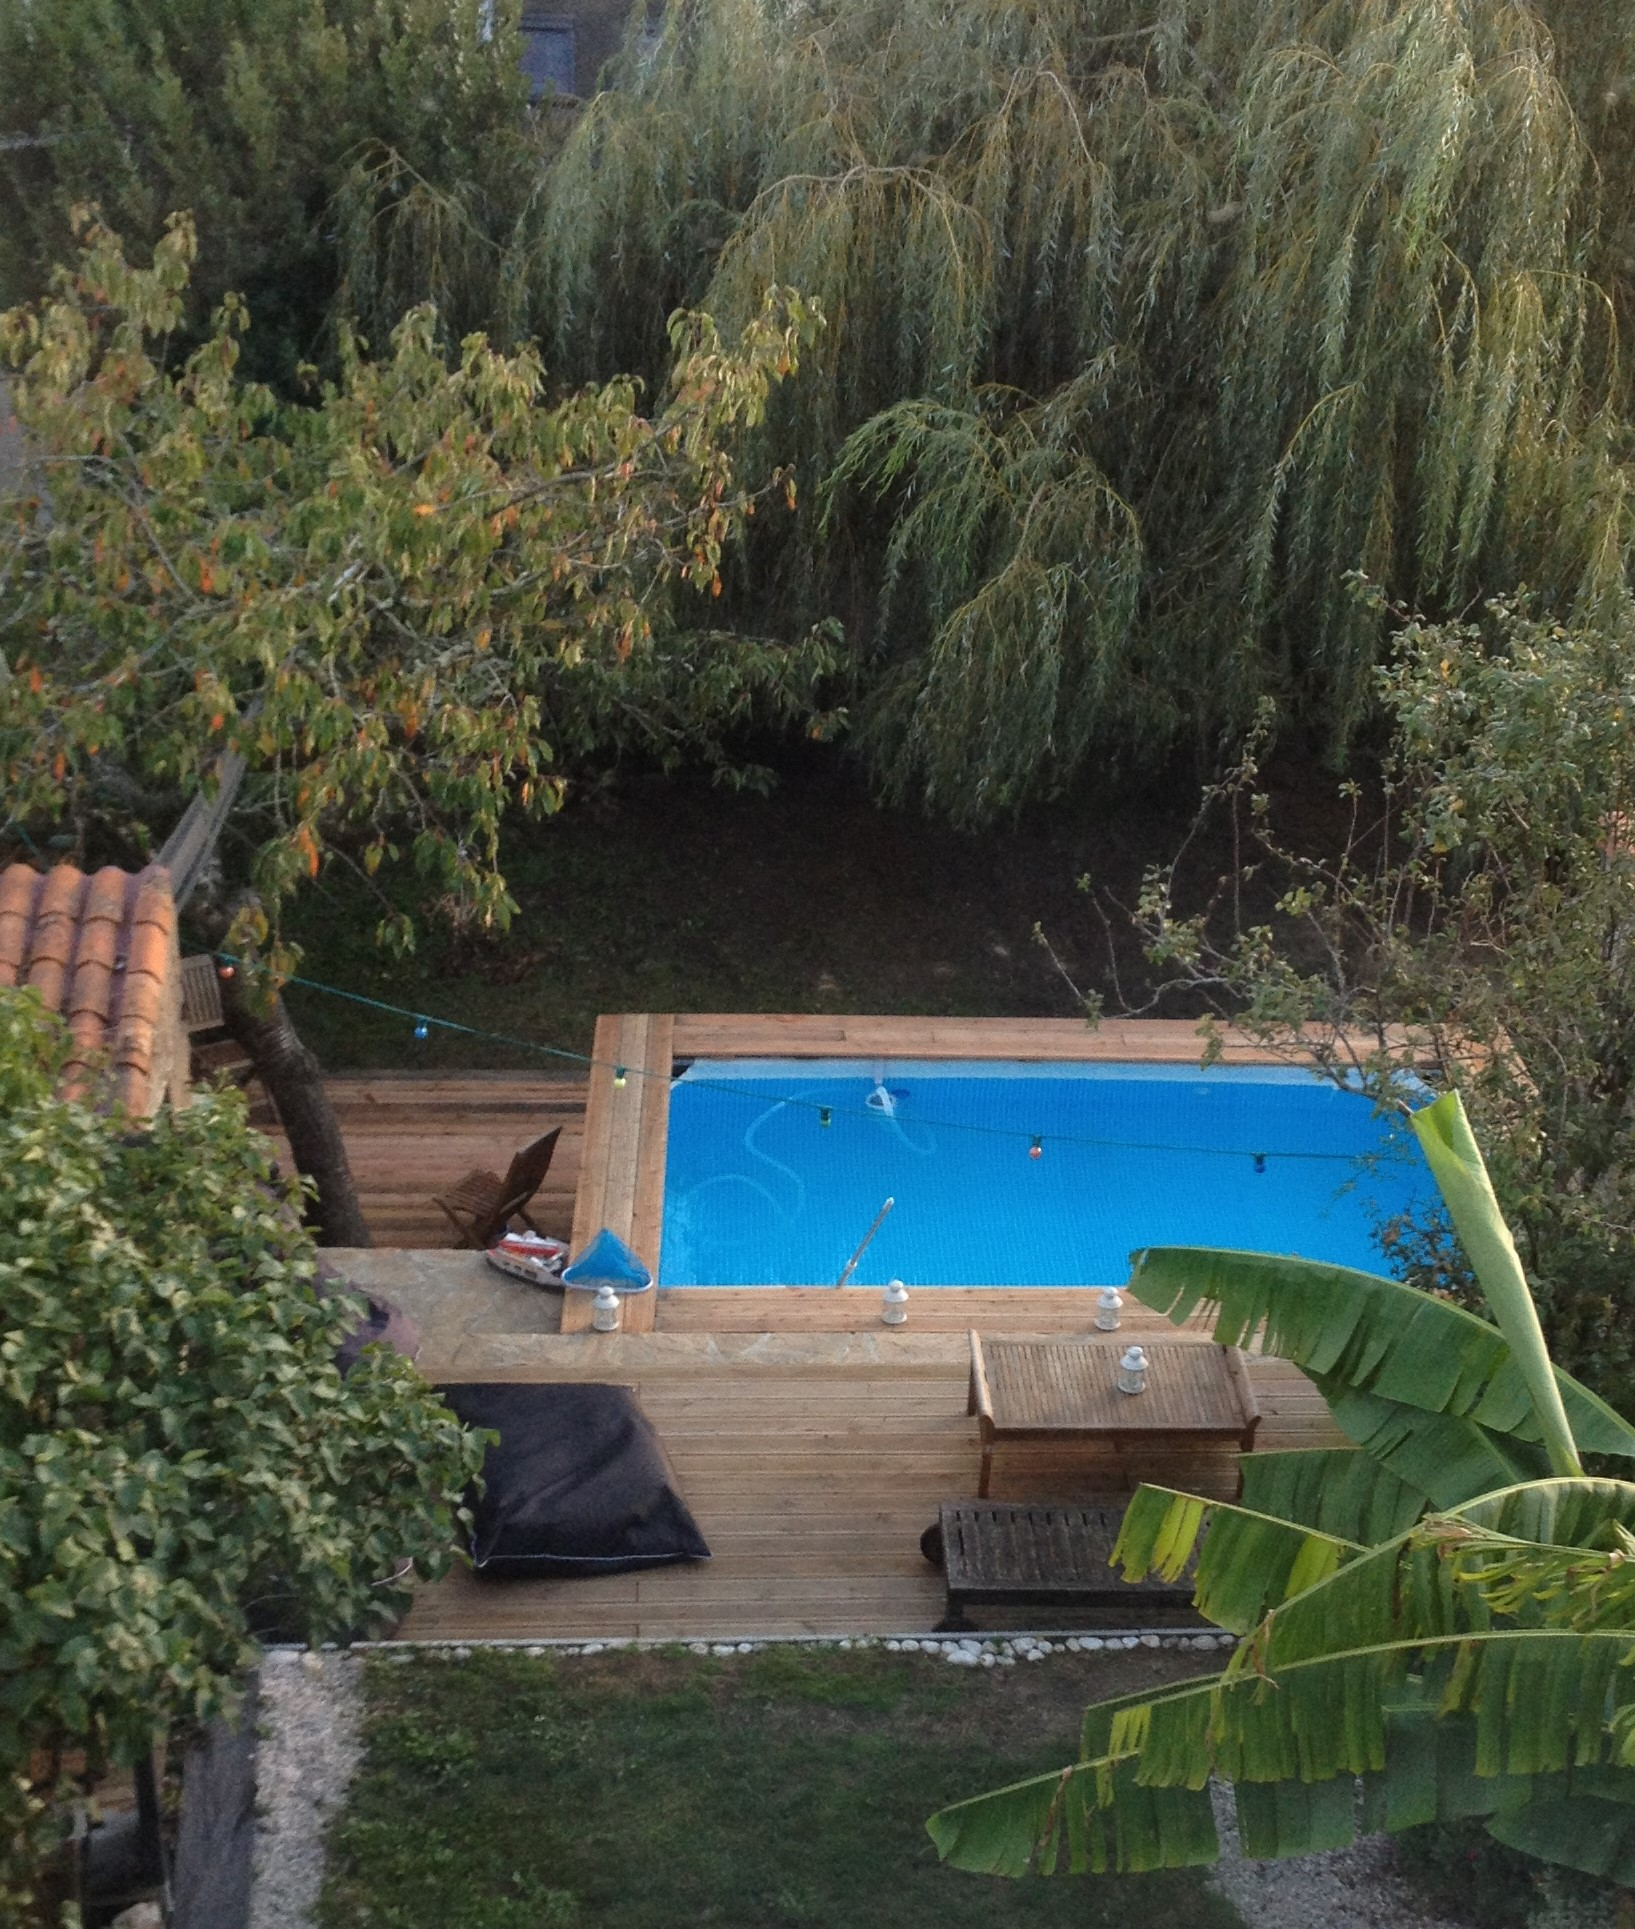 Comment encastrer sa piscine hors sol blog de raviday for Peut on enterrer une piscine hors sol en bois